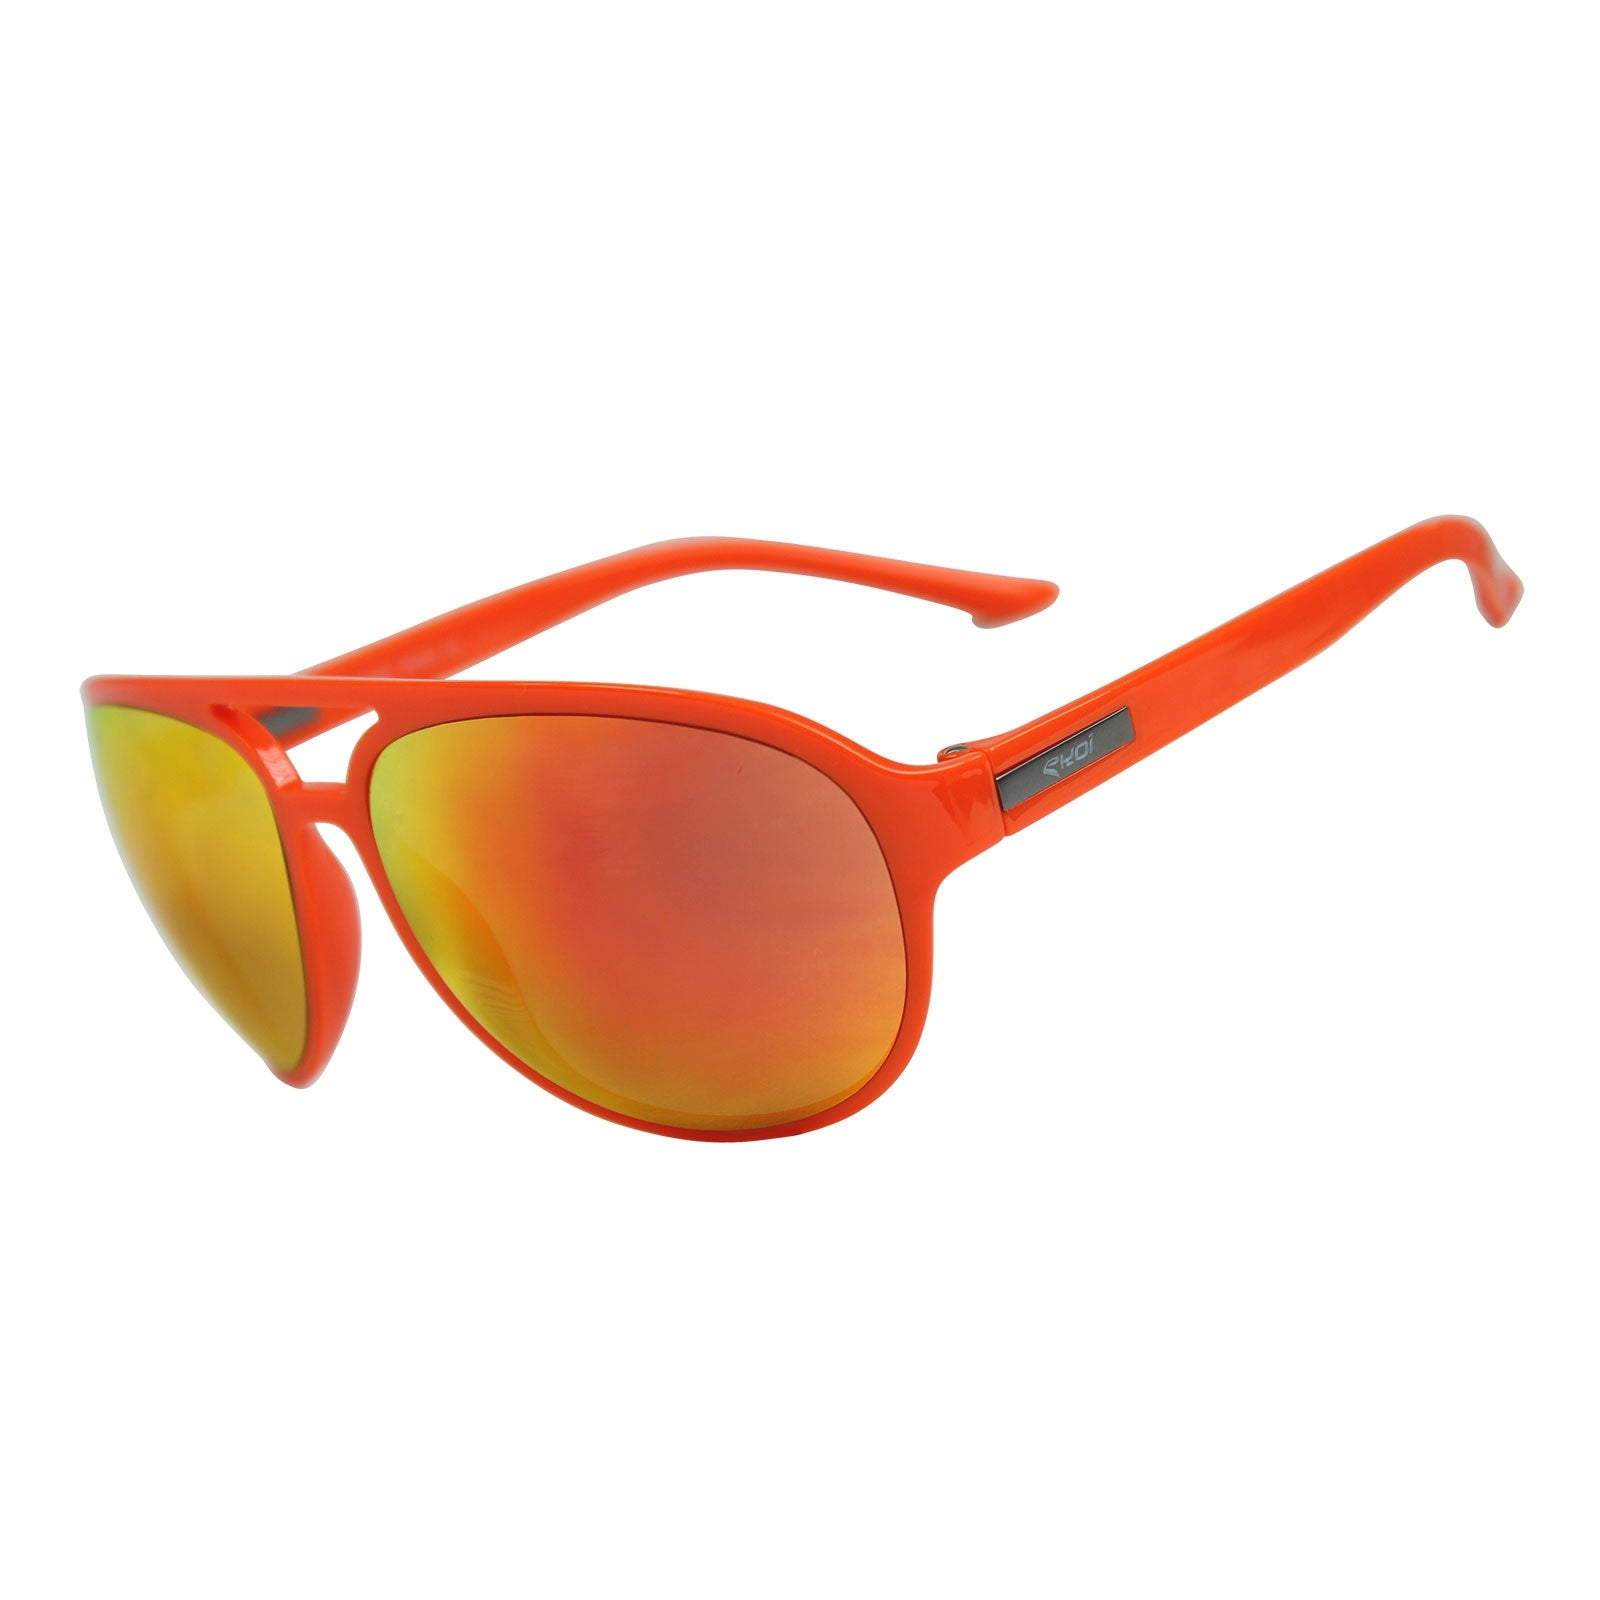 EKOI ROAD FASHION SUNGLASSES ORANGE